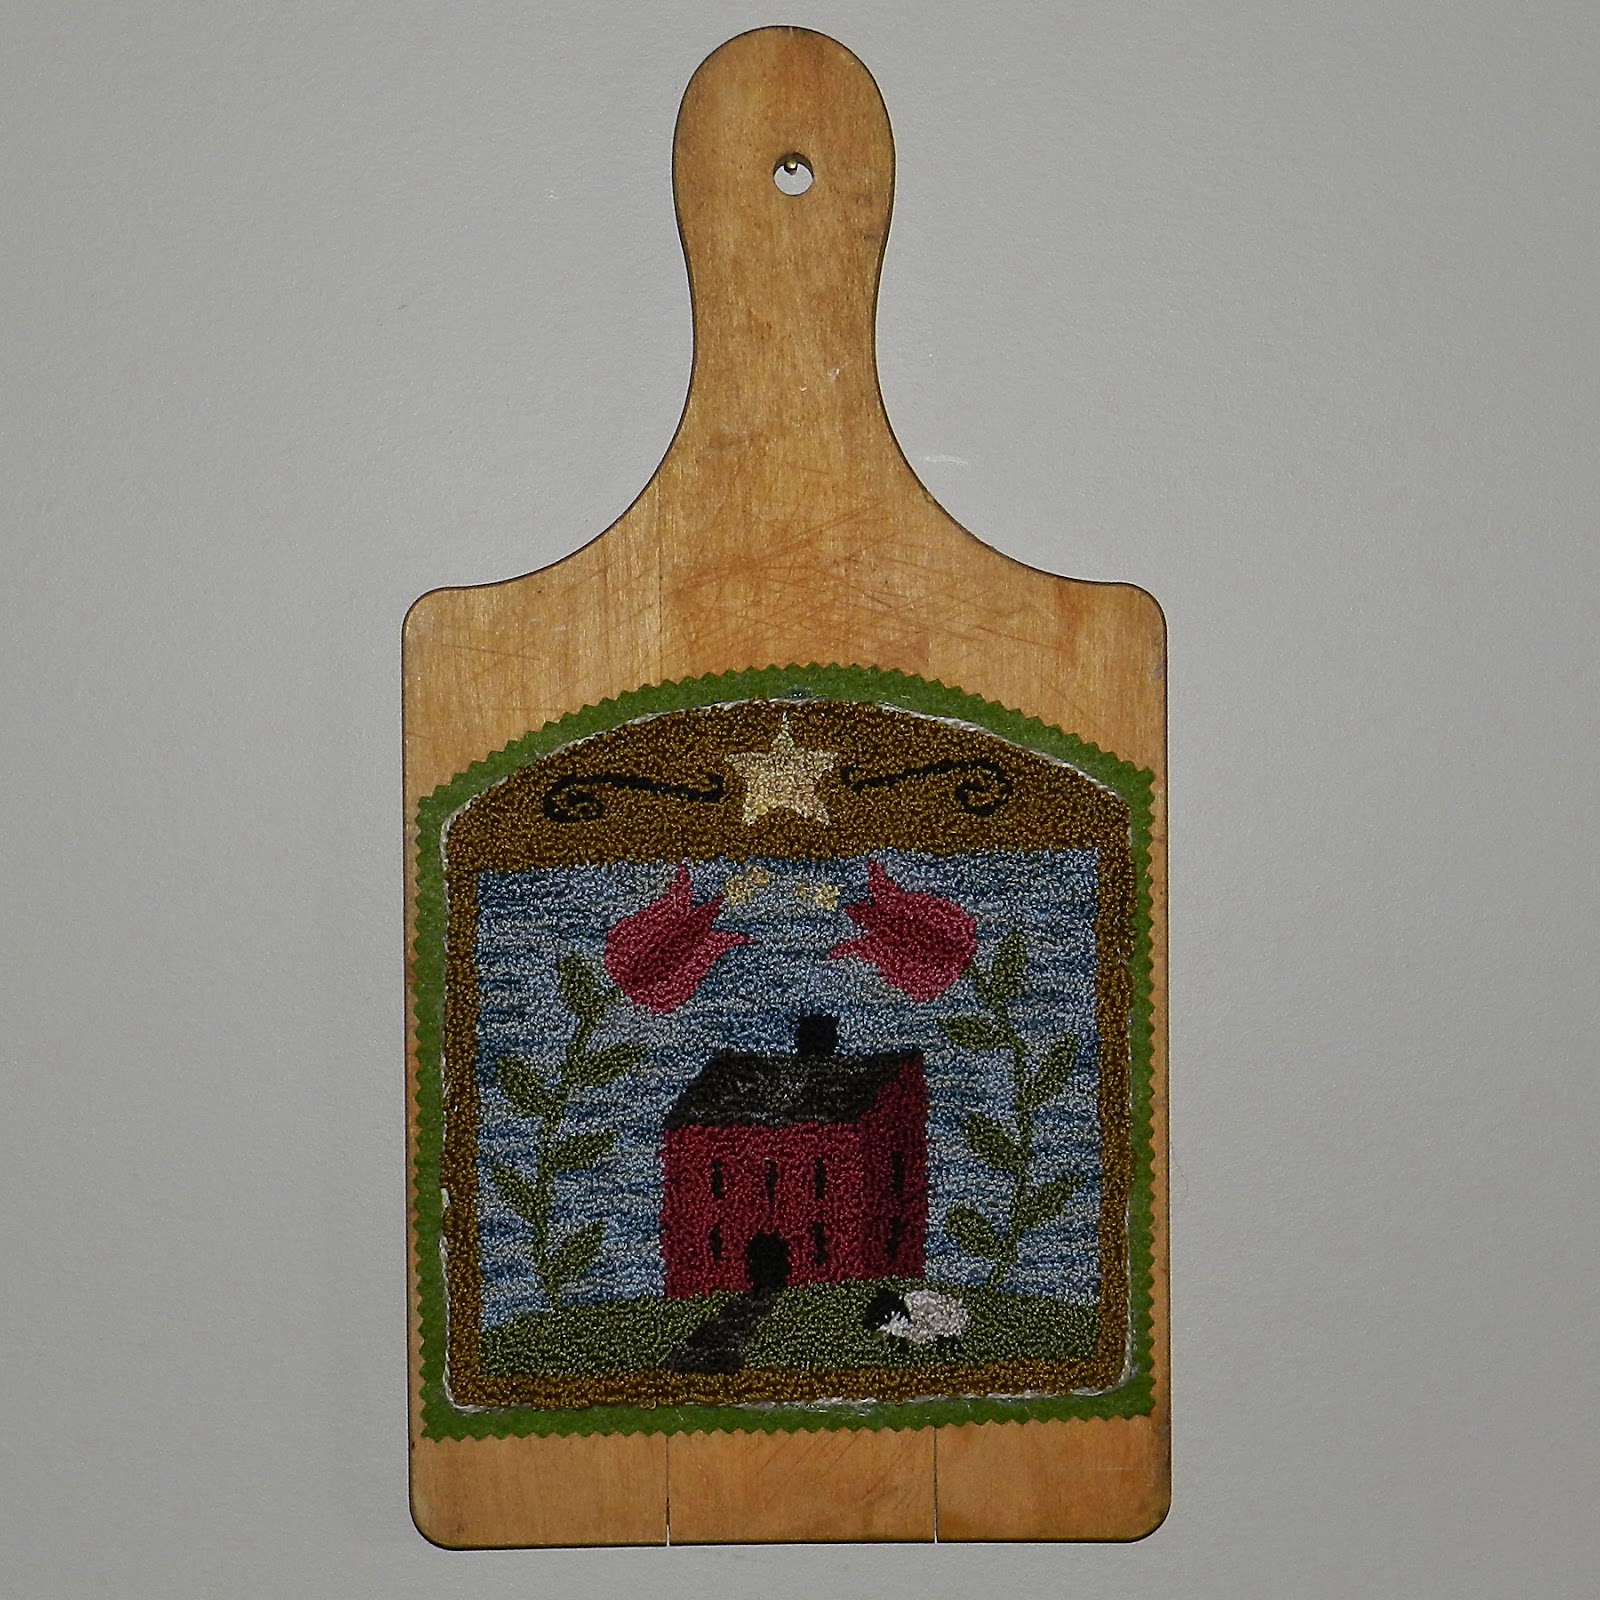 http://www.ebay.com/itm/Primitive-OOAK-Punch-Needle-Mounted-on-Breadboard-House-Lamb-The-Olde-Saltbox-/271836962316?ssPageName=STRK:MESE:IT